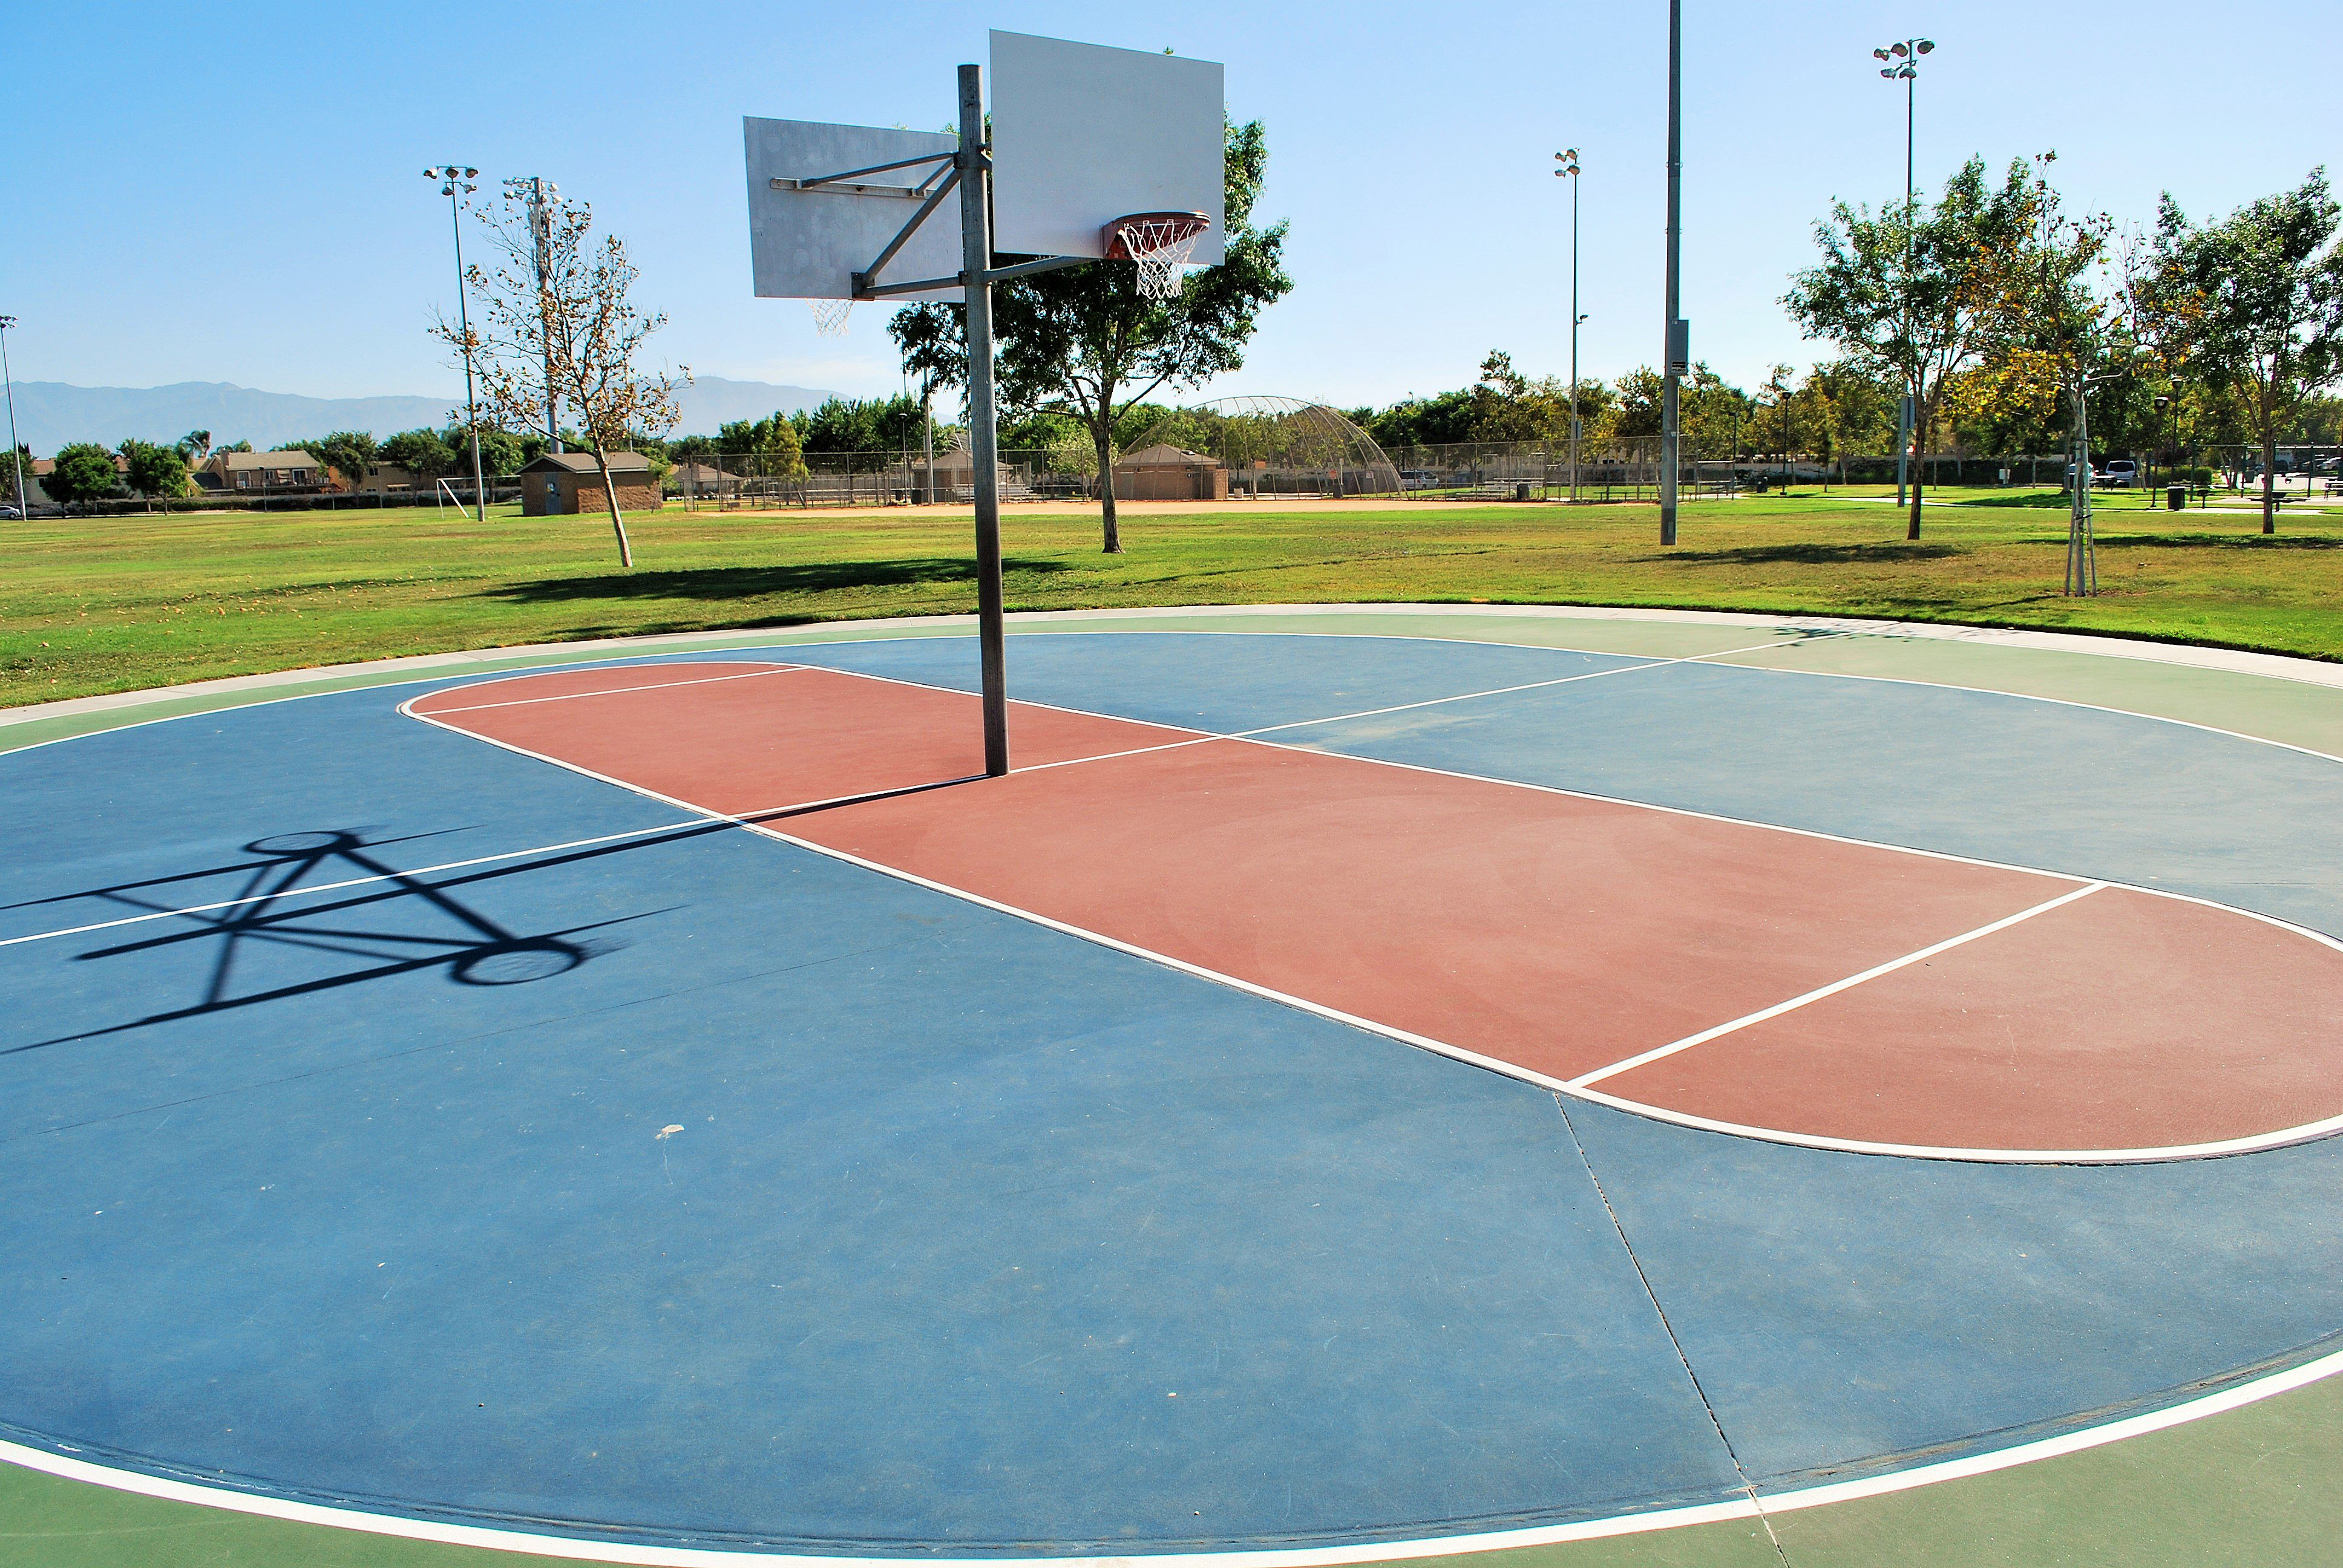 The Two Half Court Basketball Courts At Orchard Park In Eastvale California Playbasketball Http Youreastvalerealtor Com Eas Orchard Park Park Tennis Court